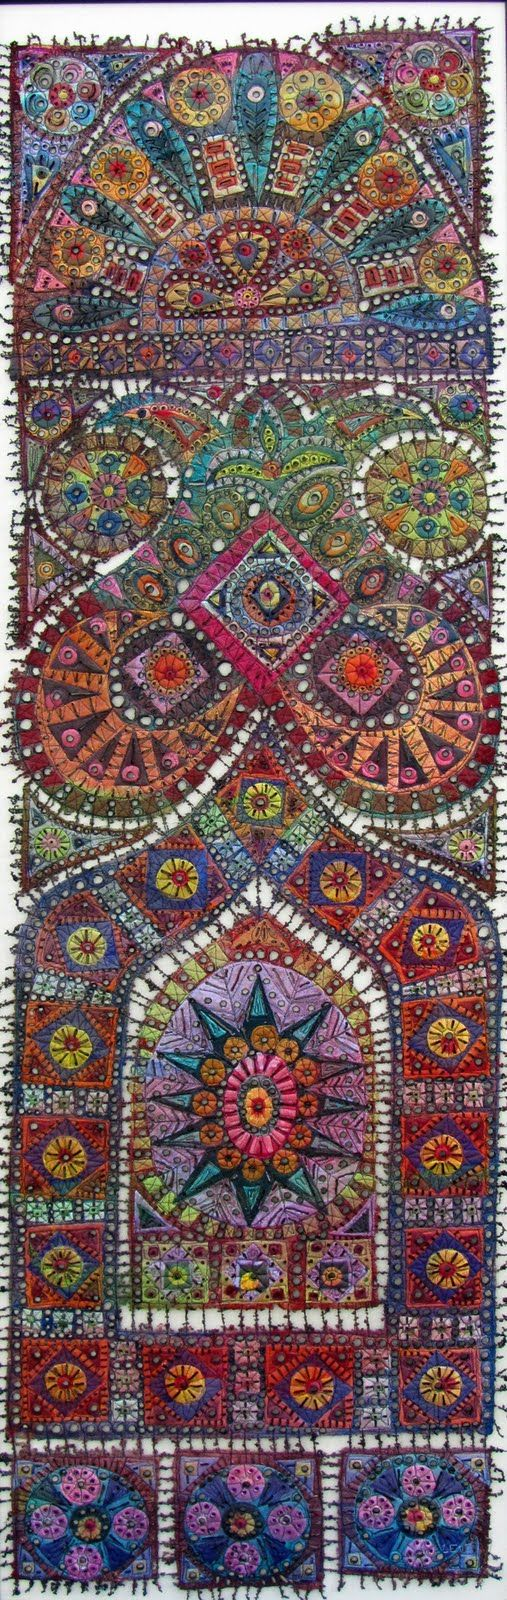 Art In Stitches: Stained Glass XXVII...and YOUR HELP NEEDED!